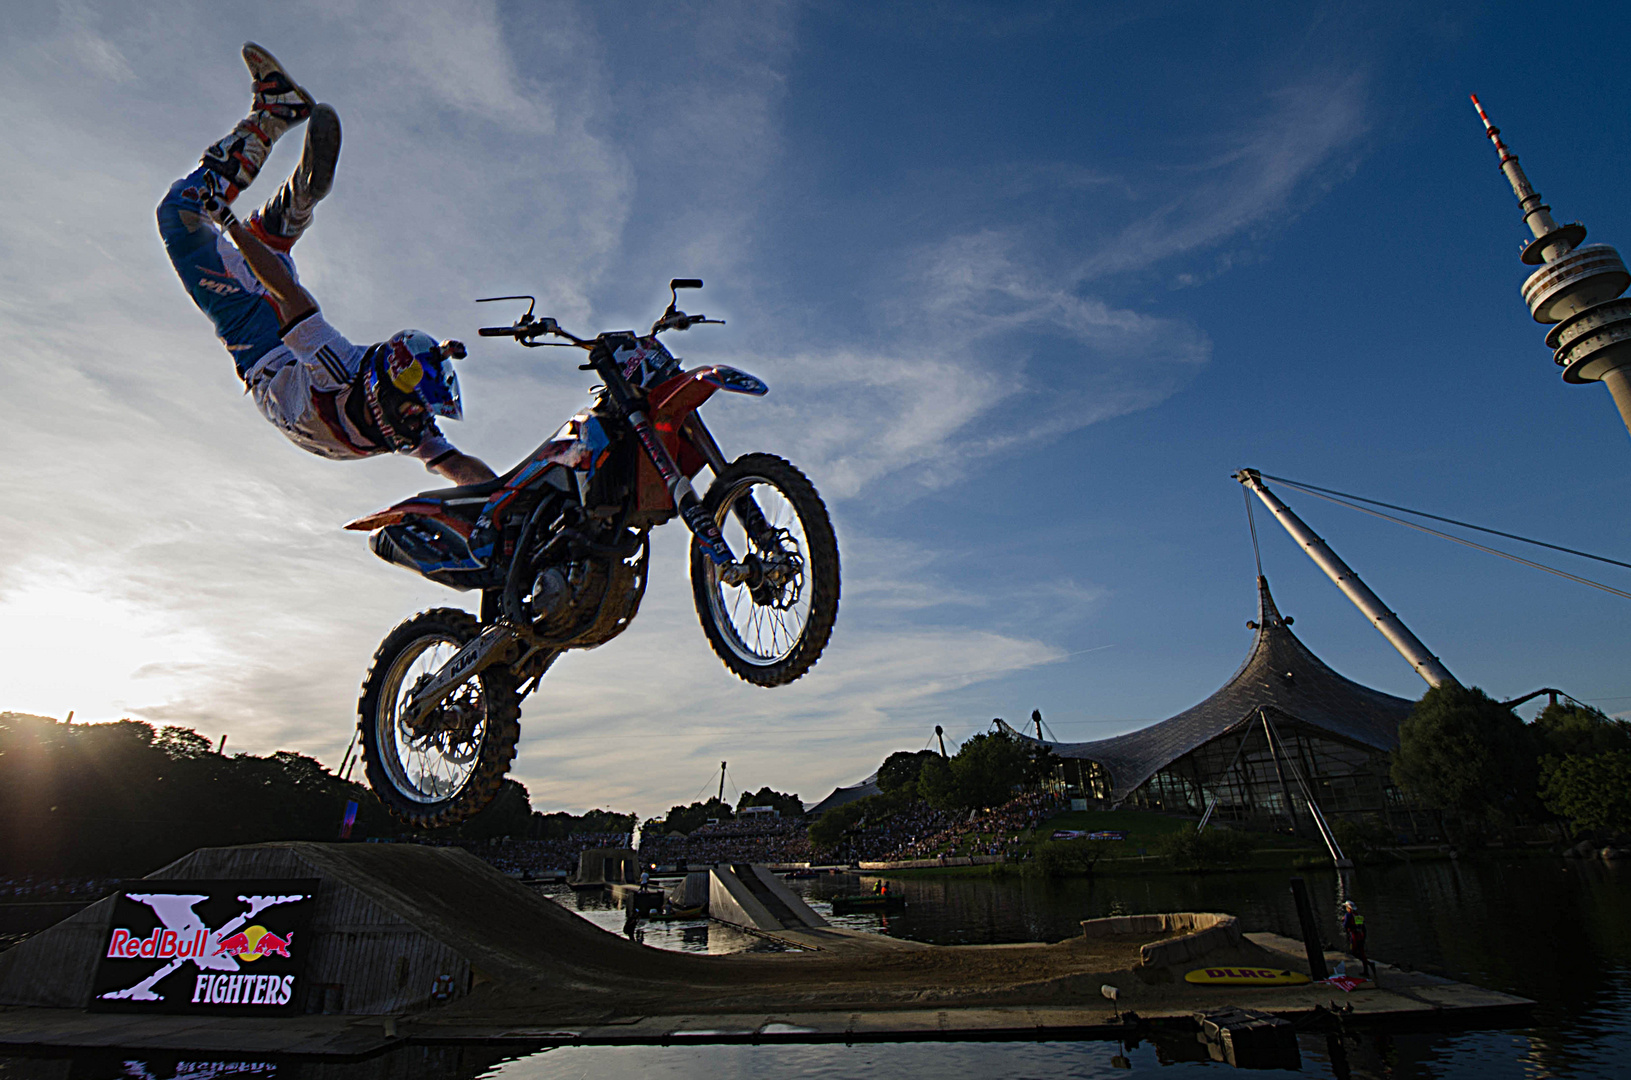 Luc Ackermann Red Bull X-Fighters